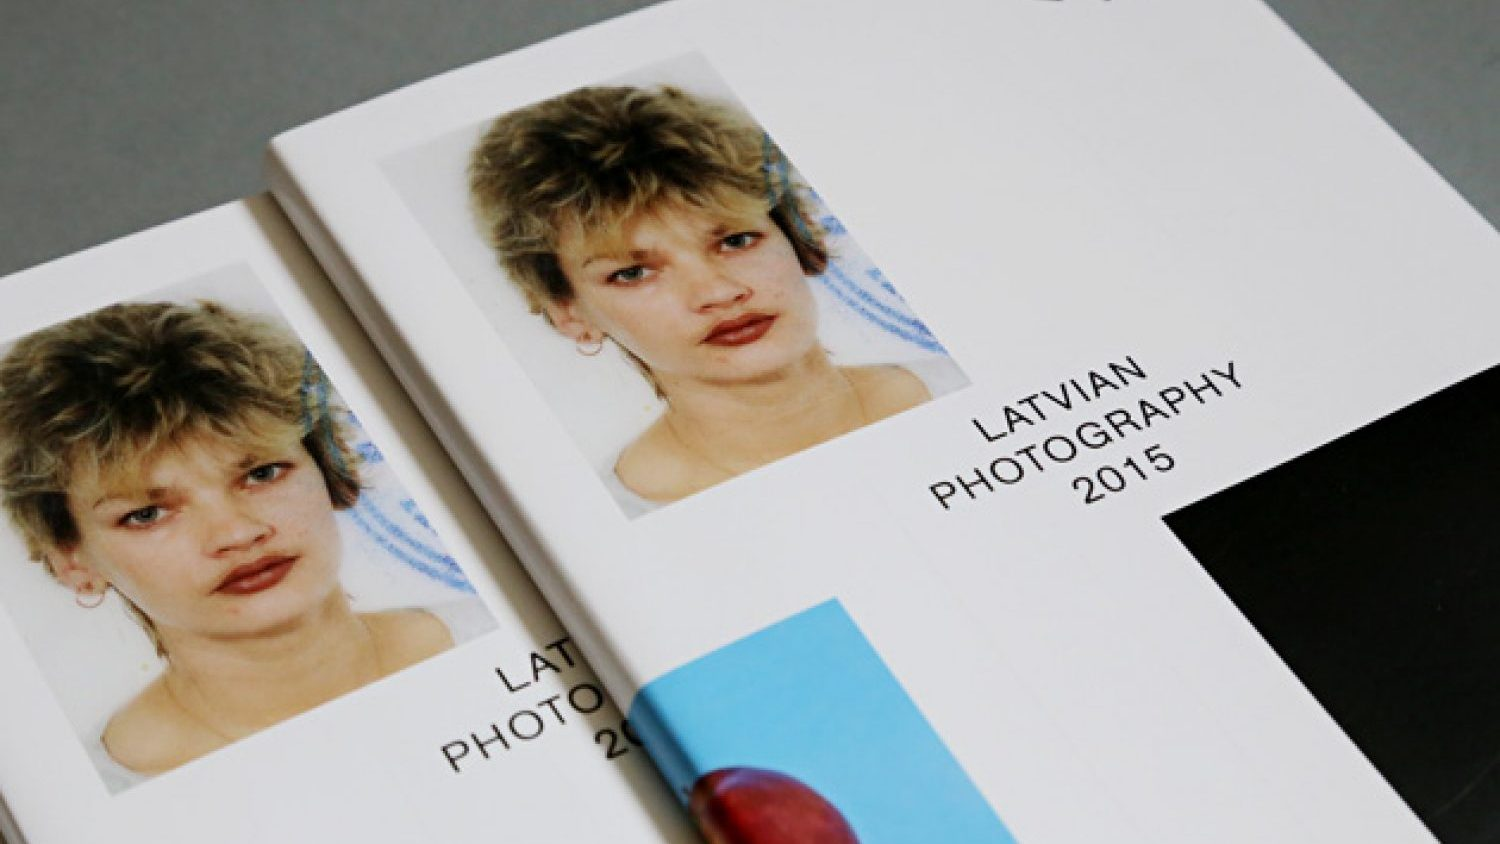 Latvian Photography Yearbook